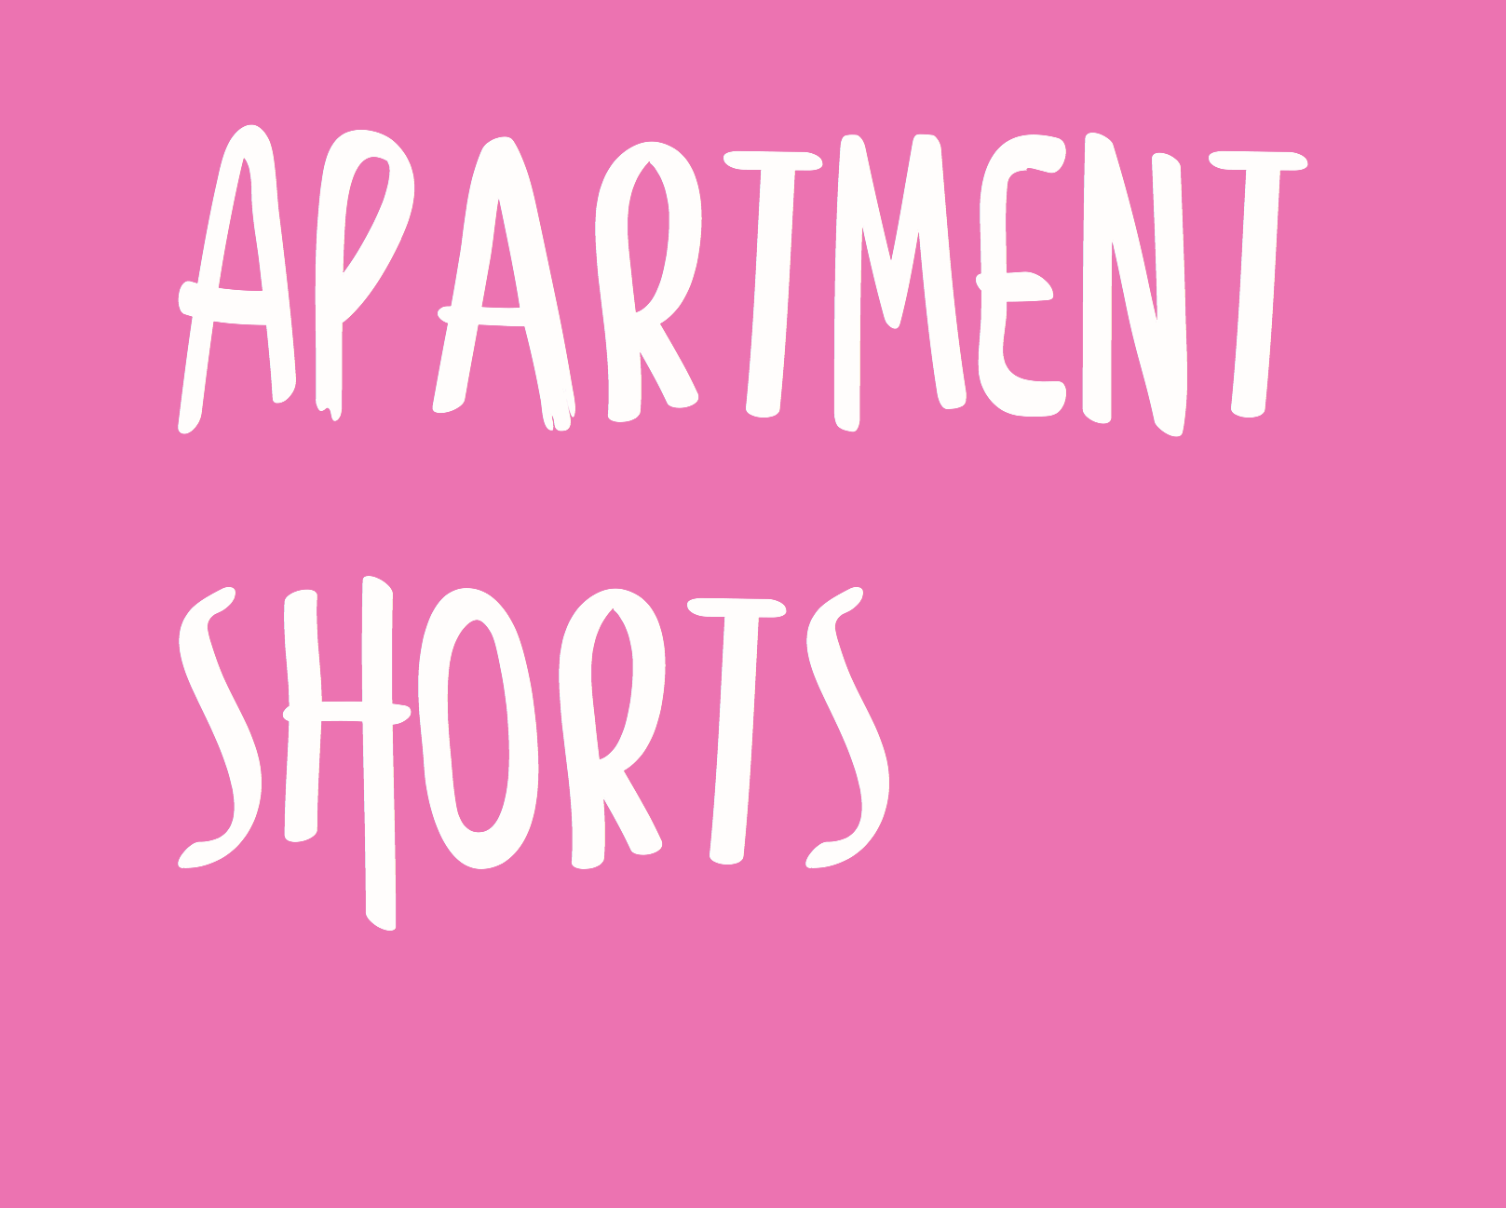 Apartment Short Series - DRAMEDY SHORT-FORM SERIESA collection of ten fantasy-comedy short films (all 4-7 minutes in length) that follow the misadventures of one girl alone in her apartment (Blow Out is one from this collection).*All scripts available upon request